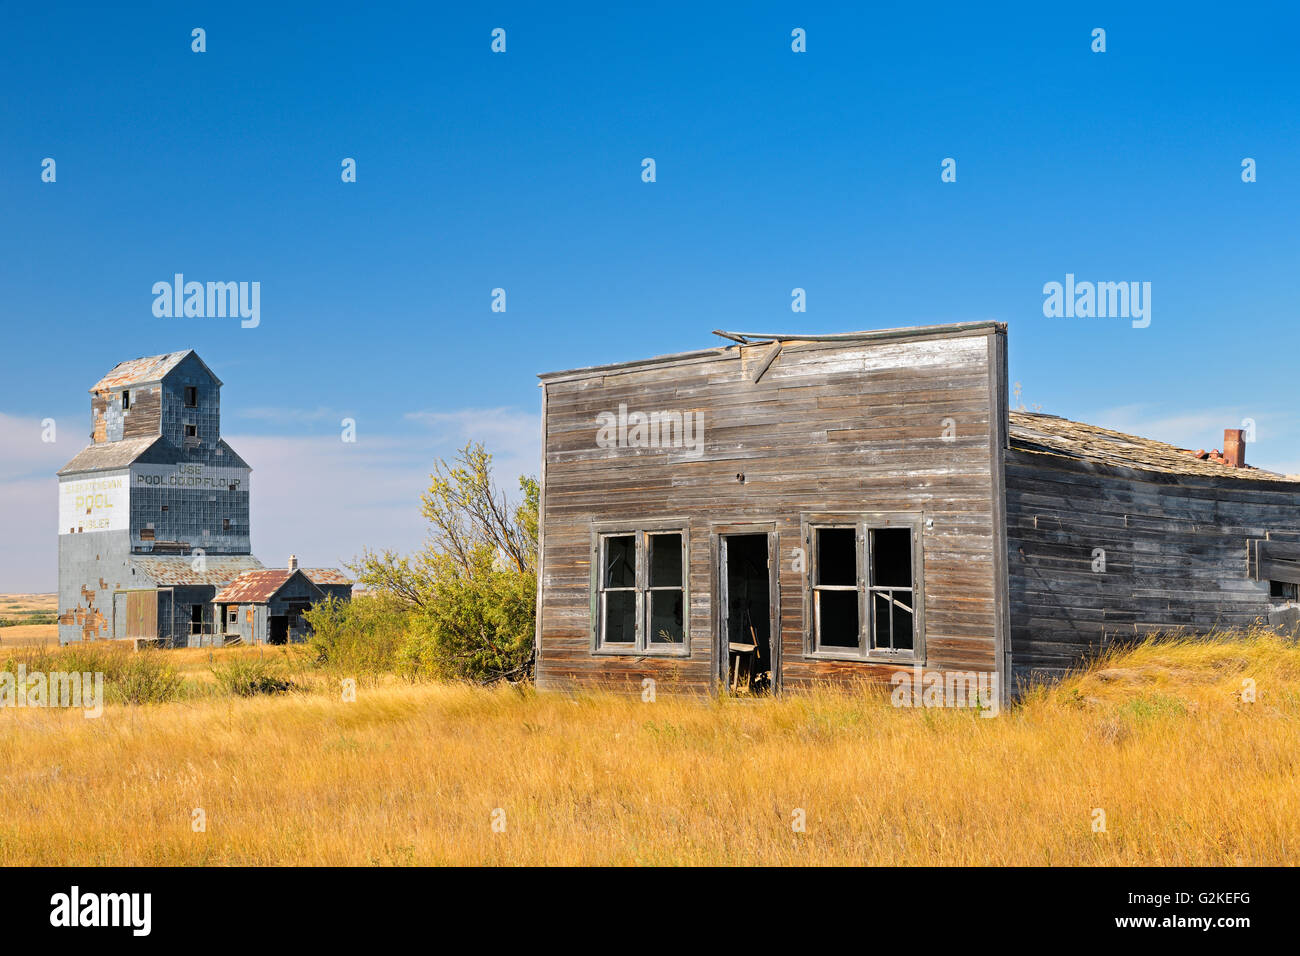 General store and grain elevator in ghost town Fusiller Saskatchewan Canada - Stock Image